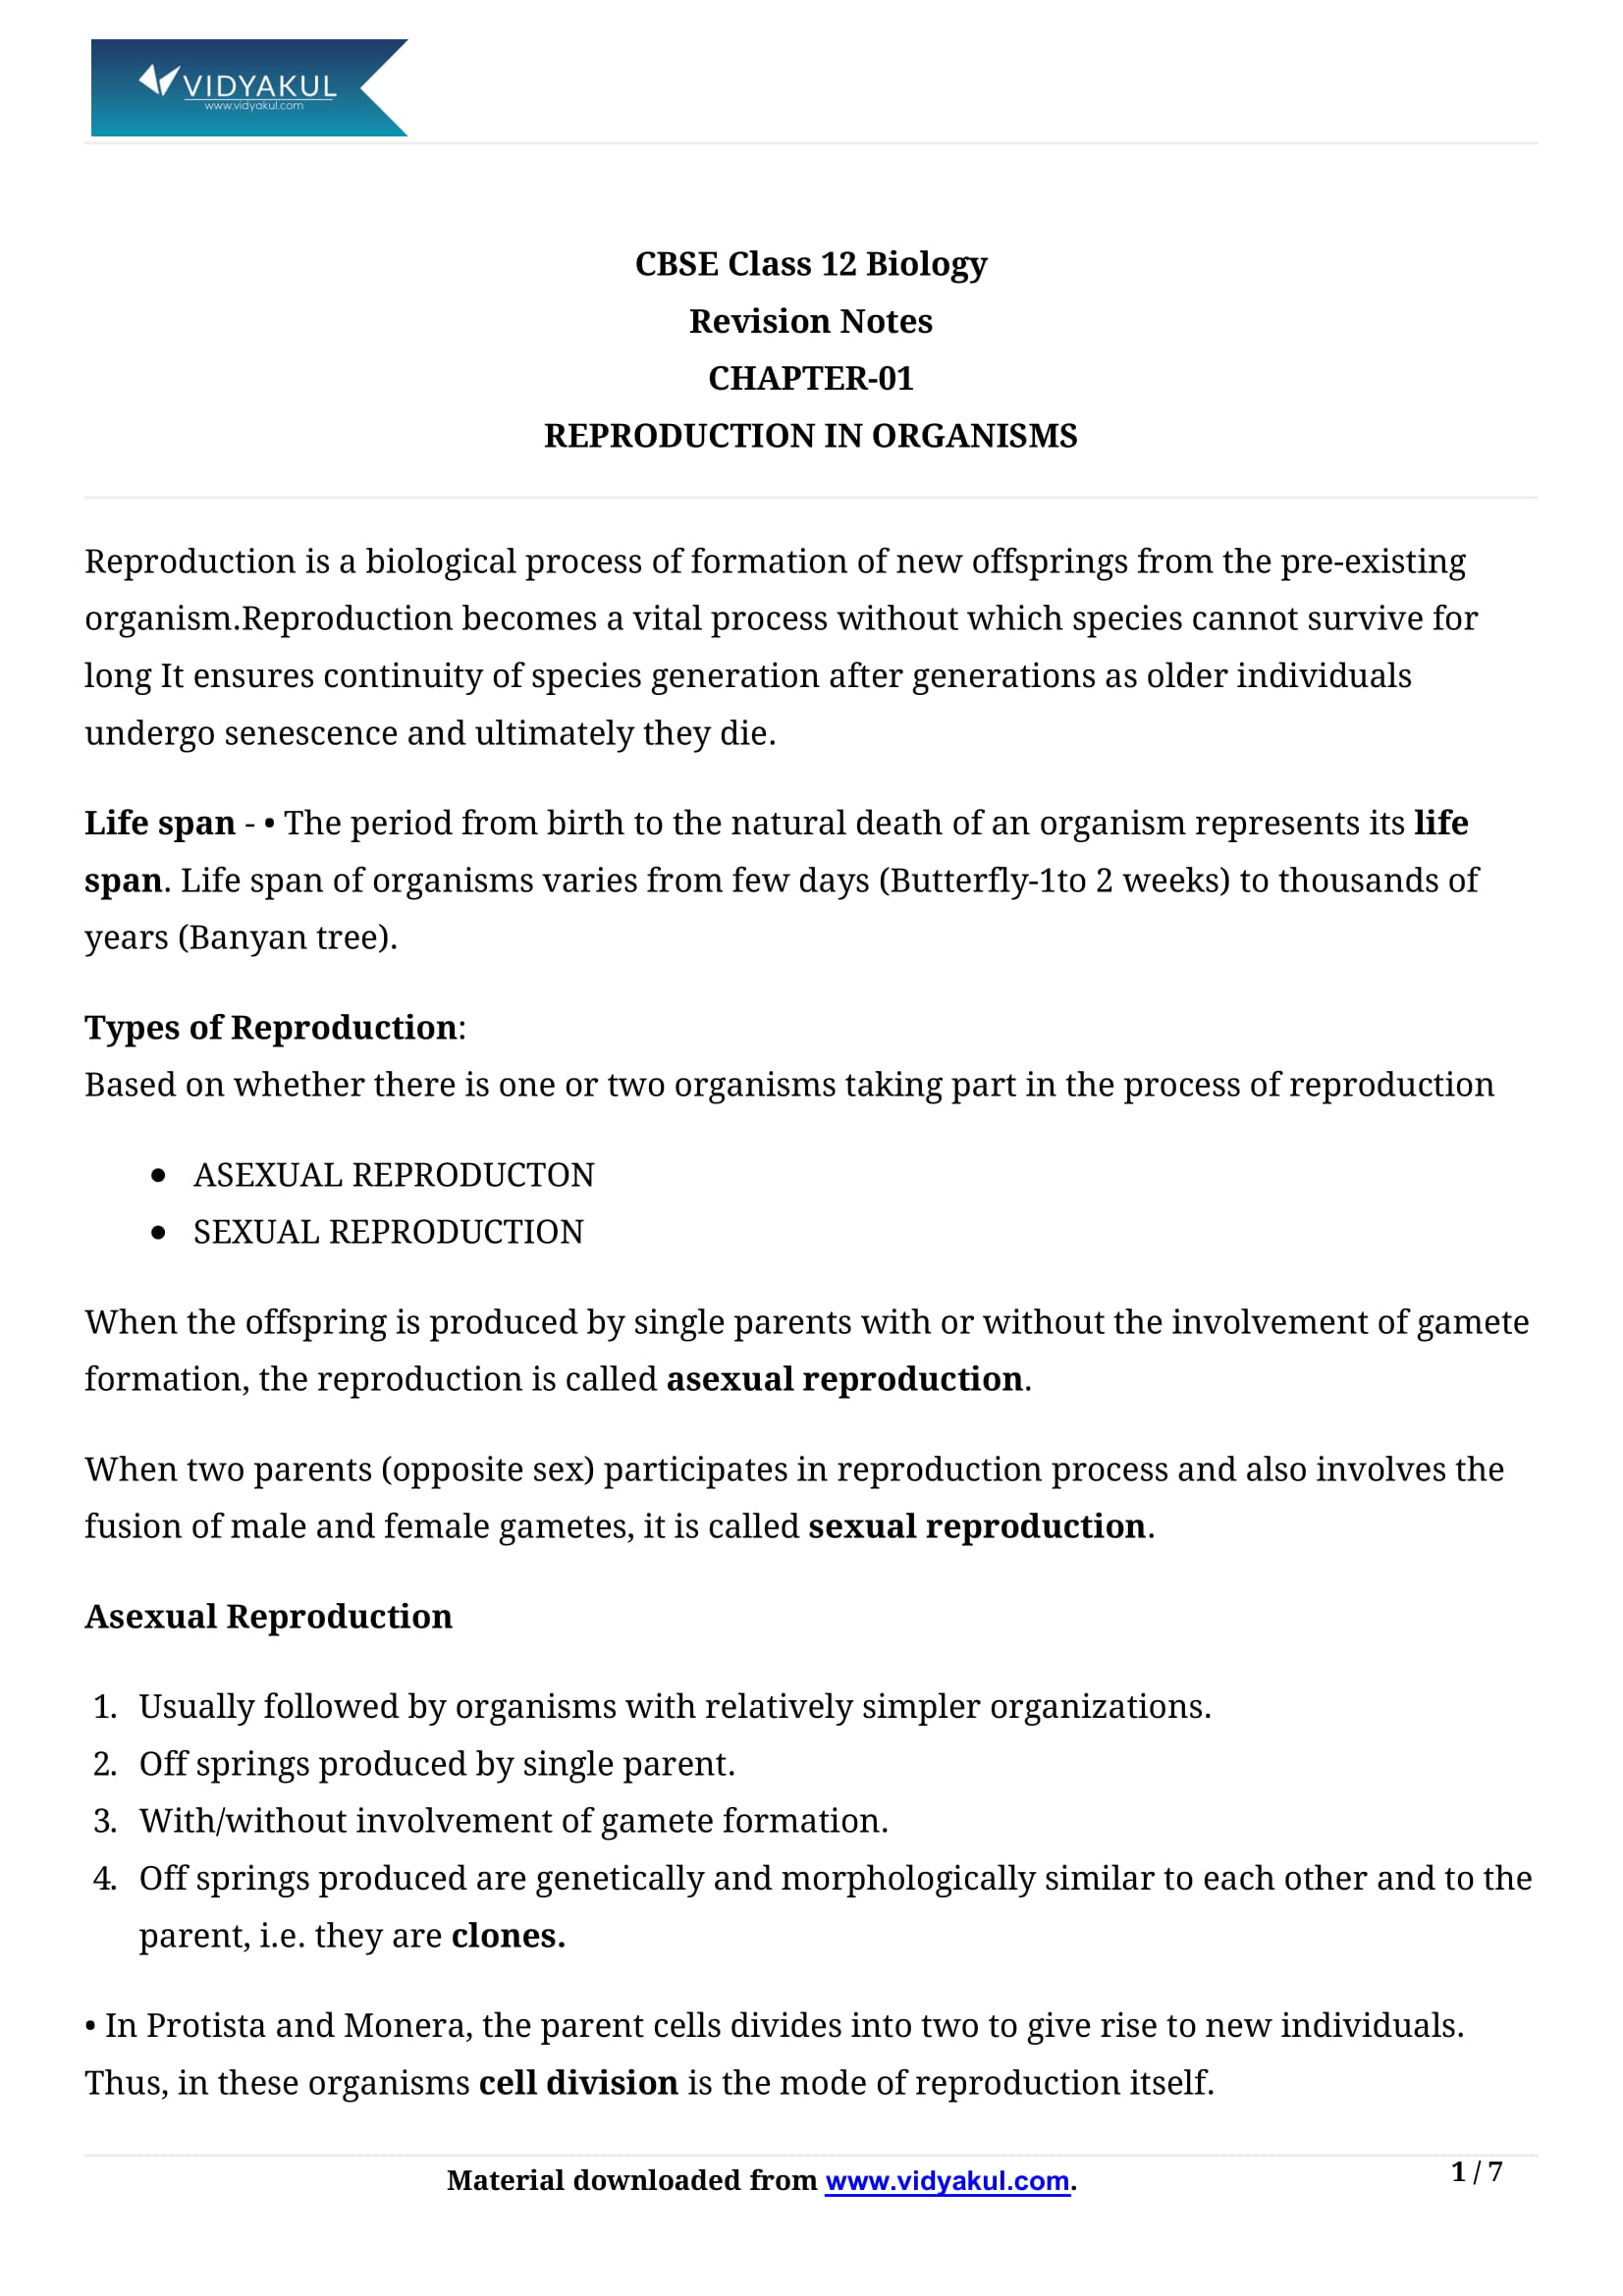 Reproduction in Organism Class 12 Notes | Vidyakul